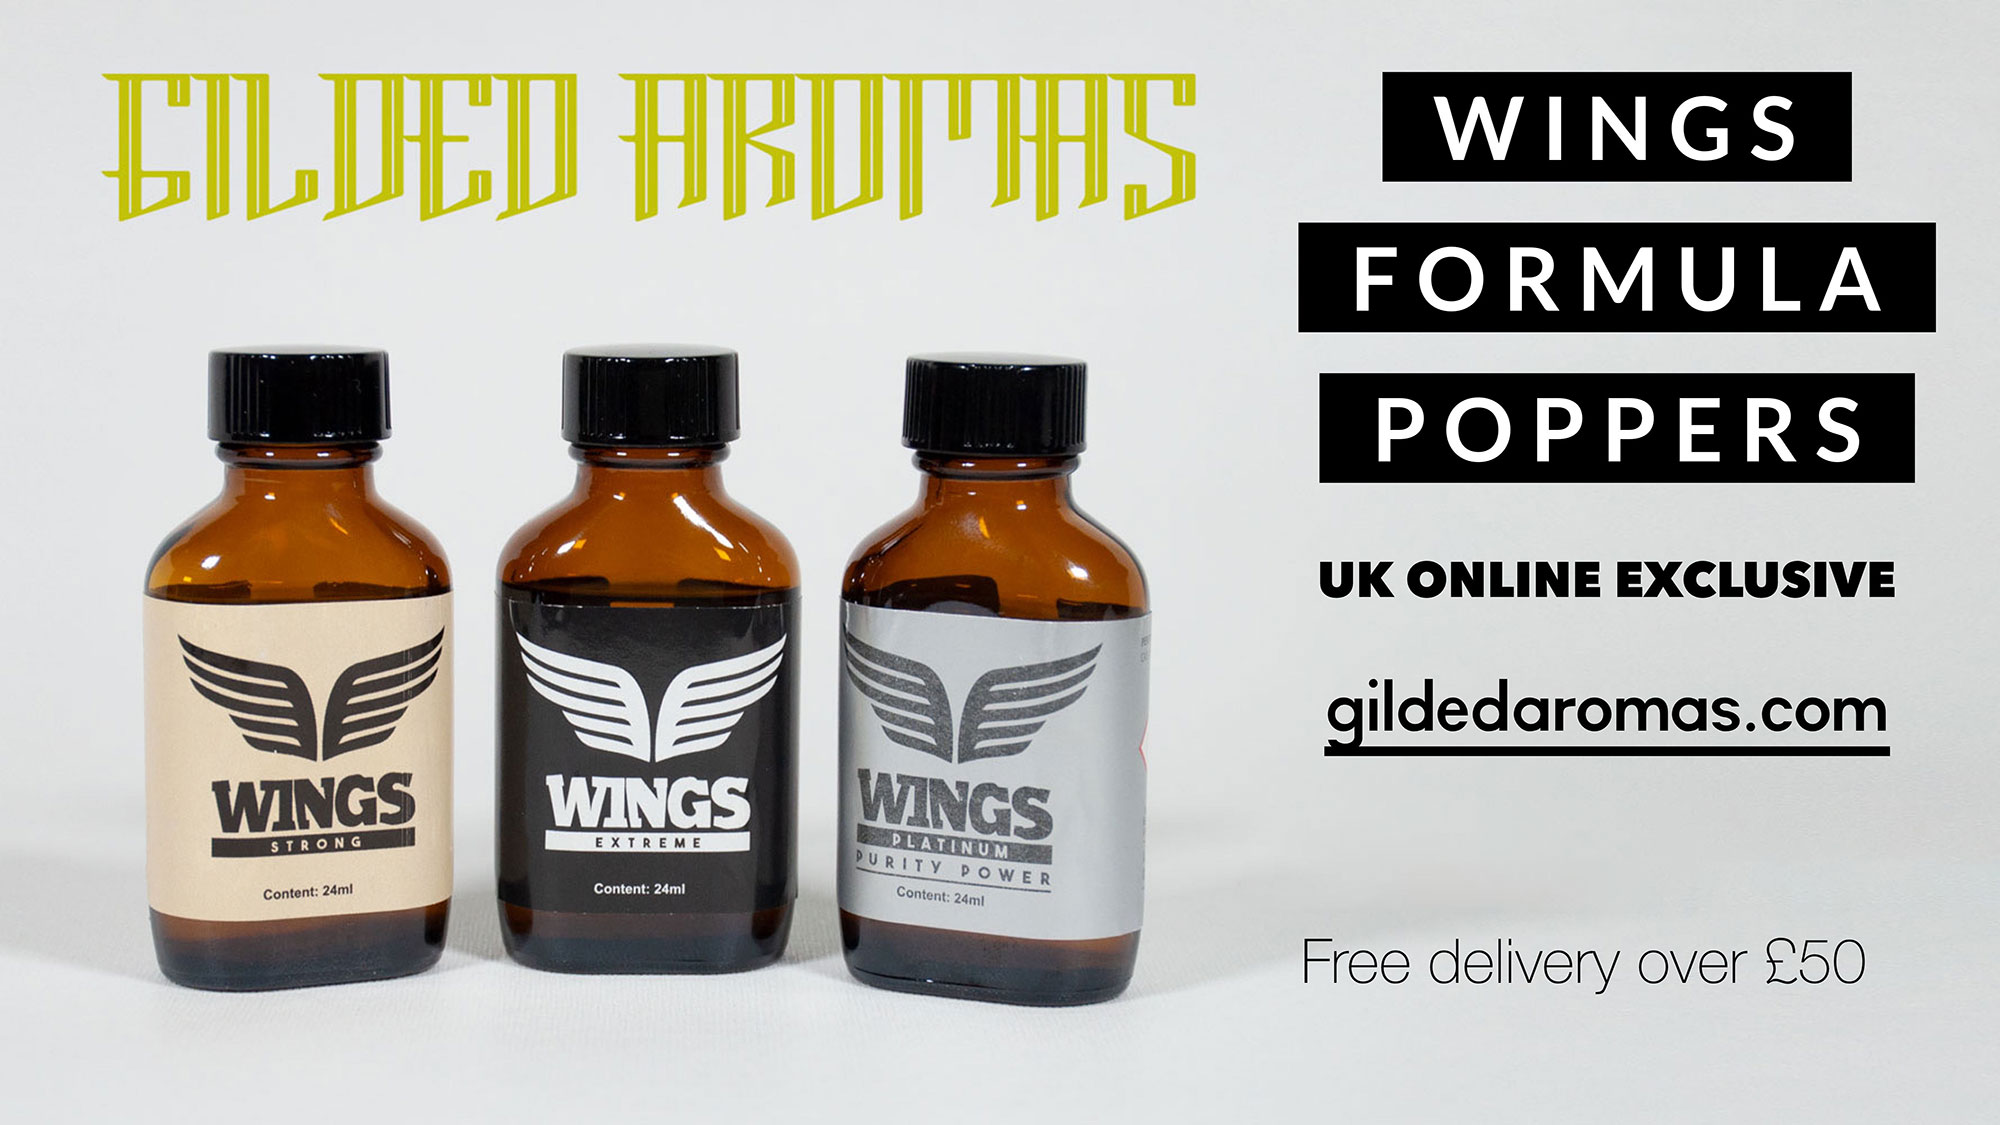 Wings Formula Poppers : UK Online Exclusive : Free delivery over £50